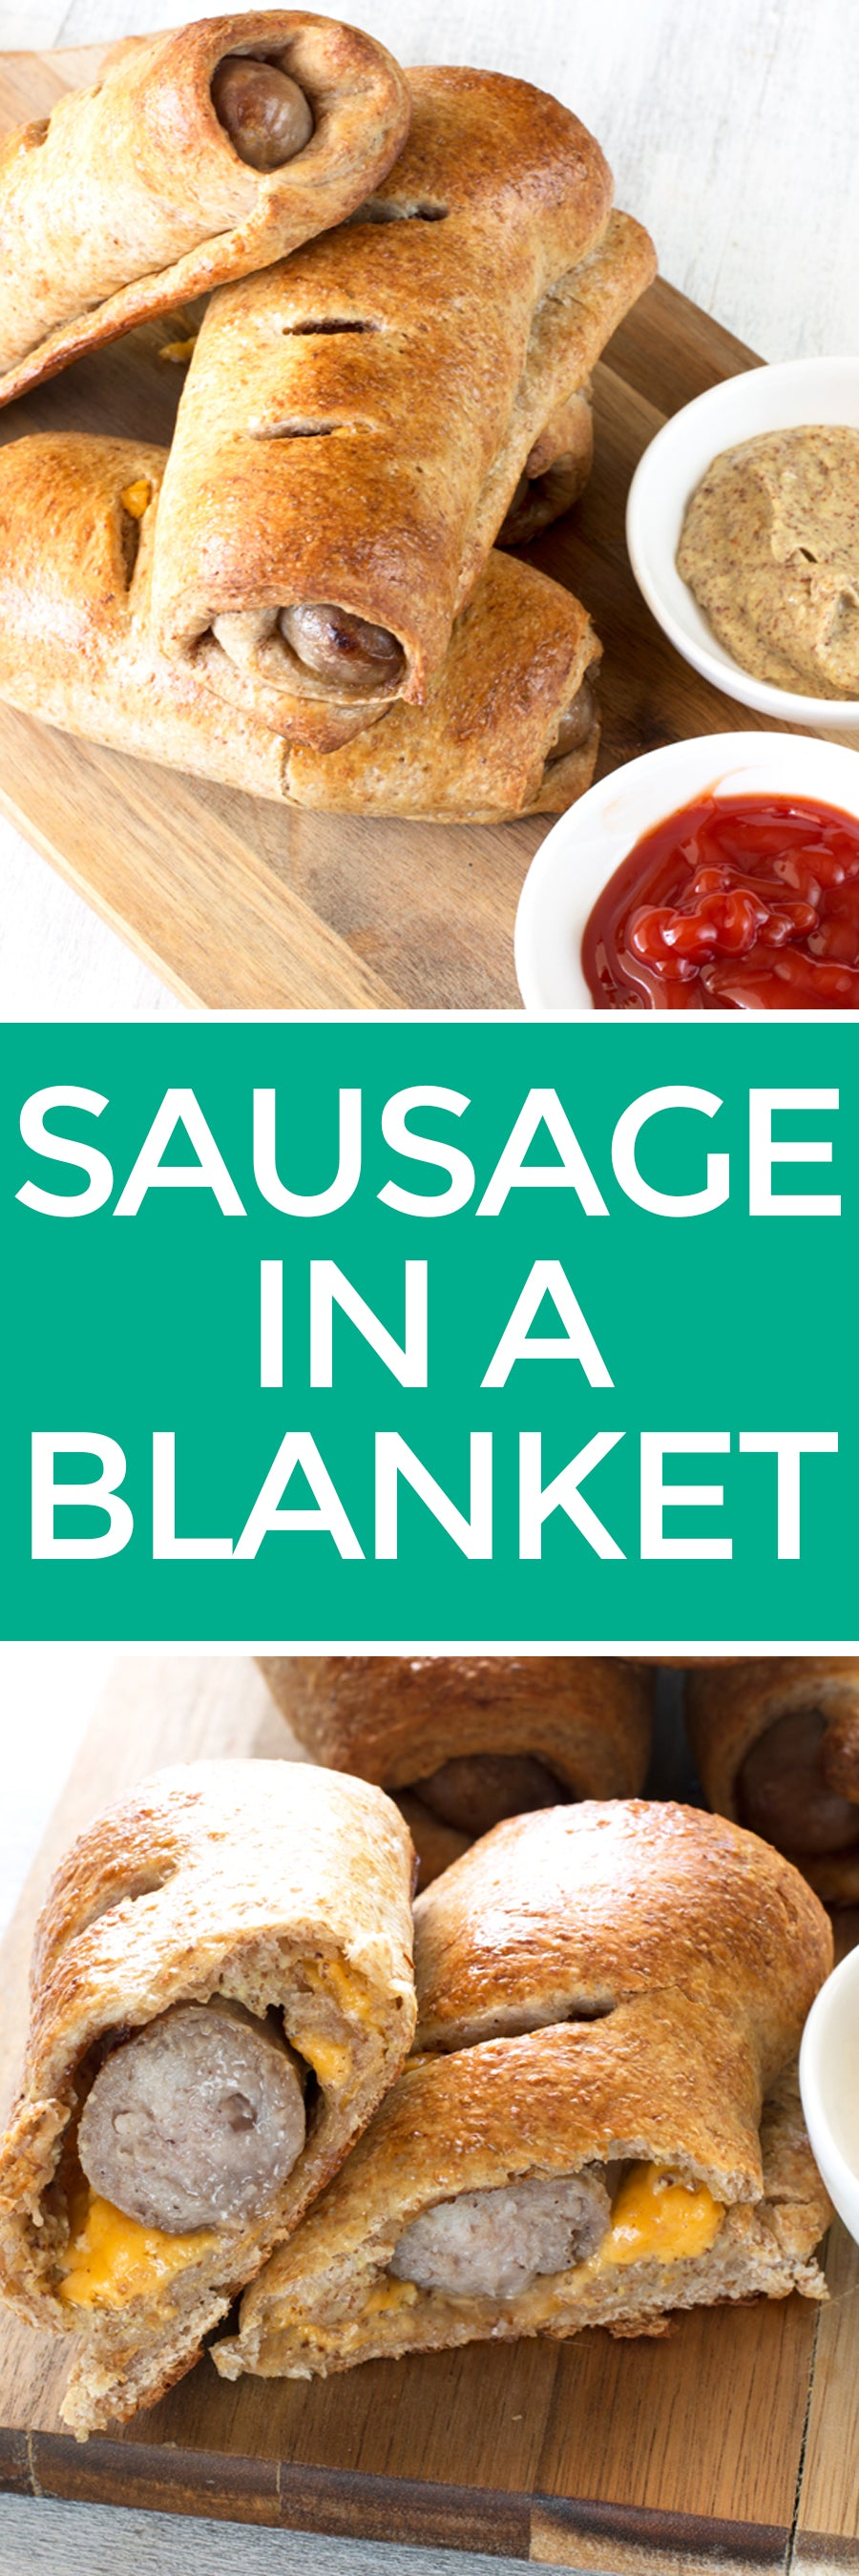 Sausage in a Blanket | pigofthemonth.com